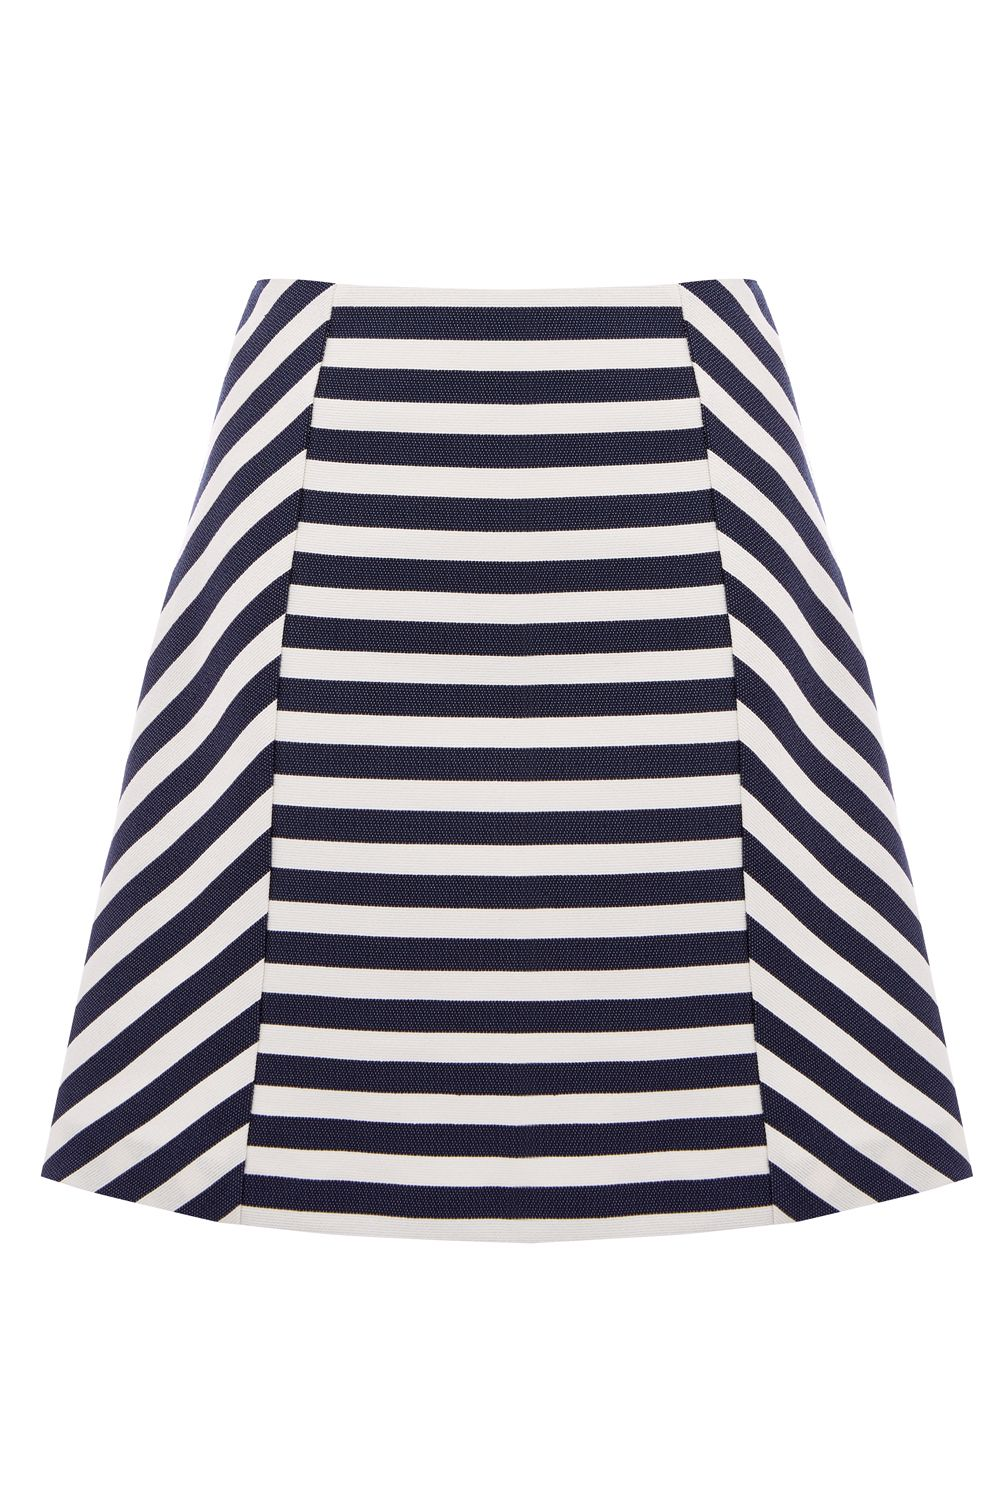 Oasis STRIPE A-LINE SKIRT, Multi-Coloured